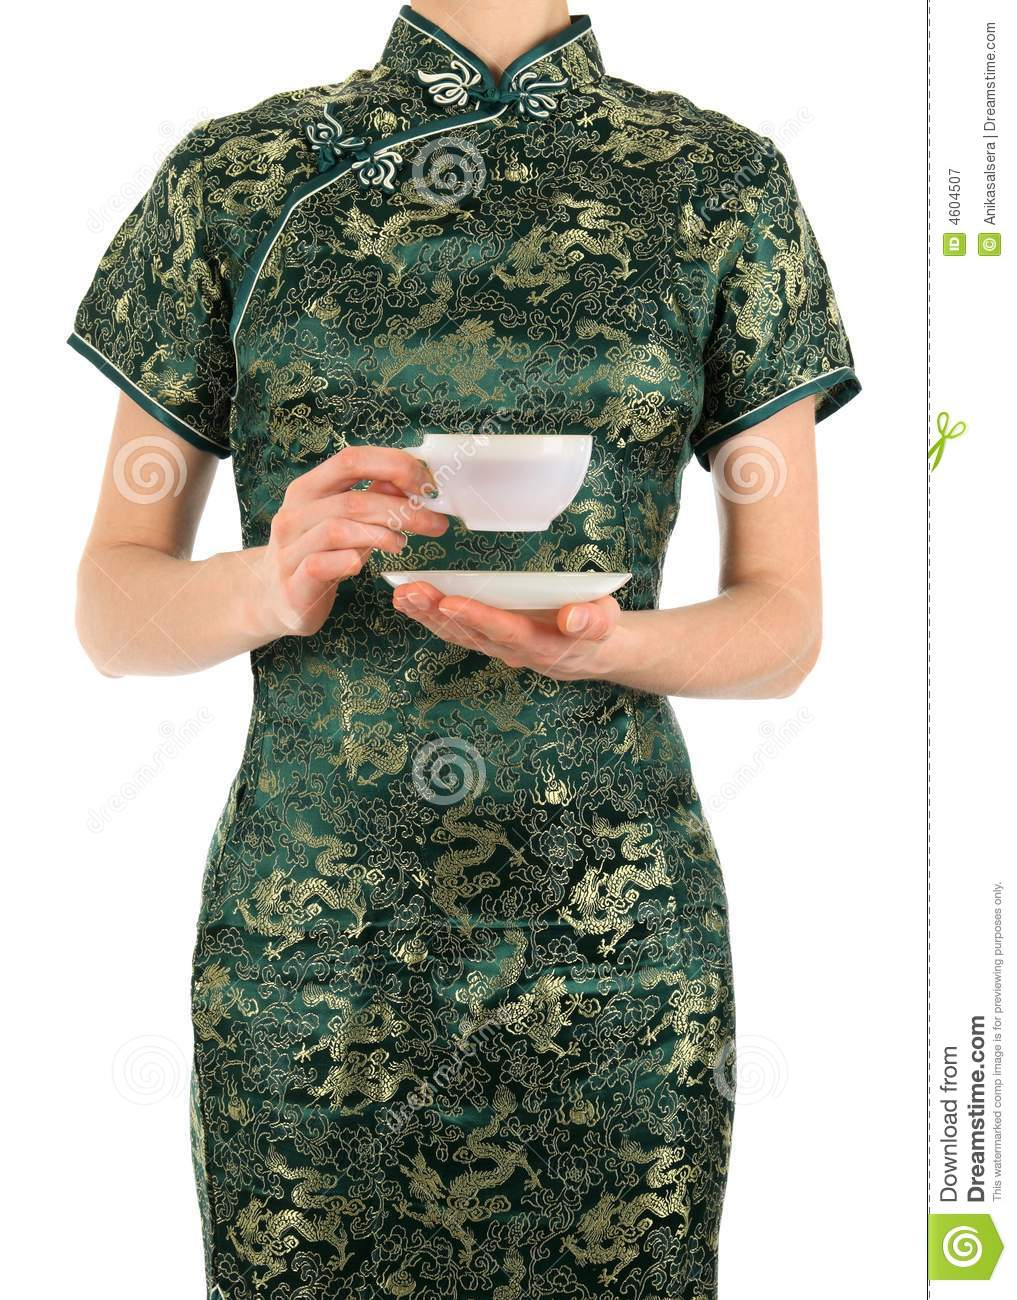 Woman in Chinese dress holding a cup of tea